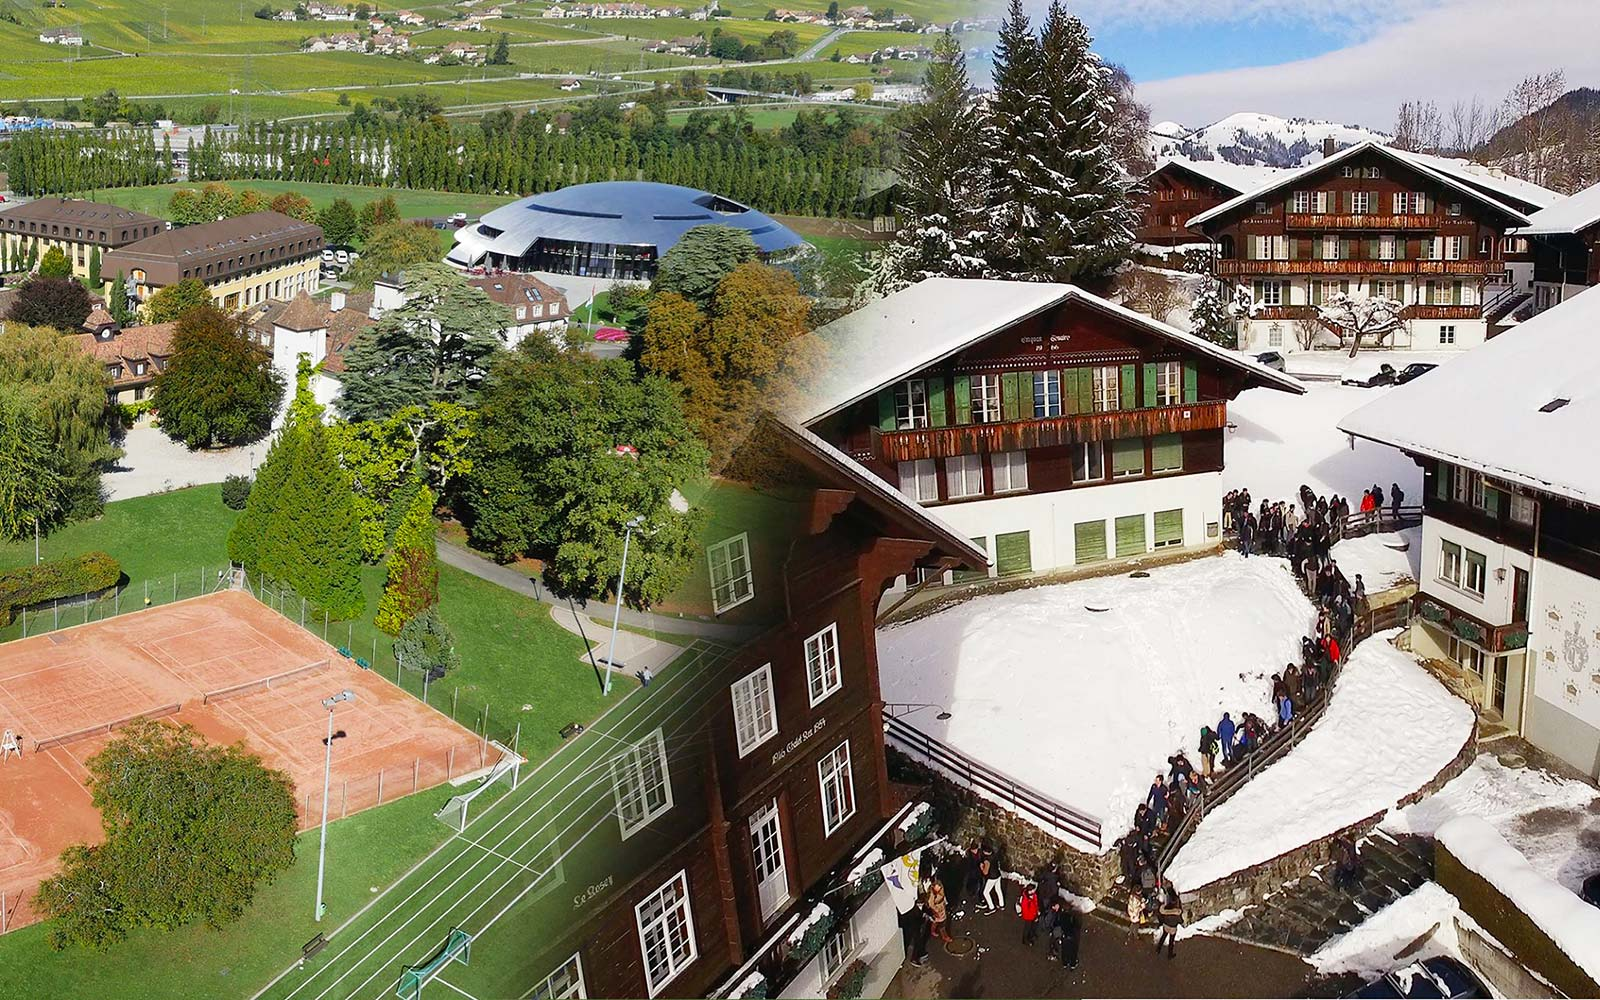 Inside the World's Most Expensive School, Where Tuition Is More Than $113,000 a Year